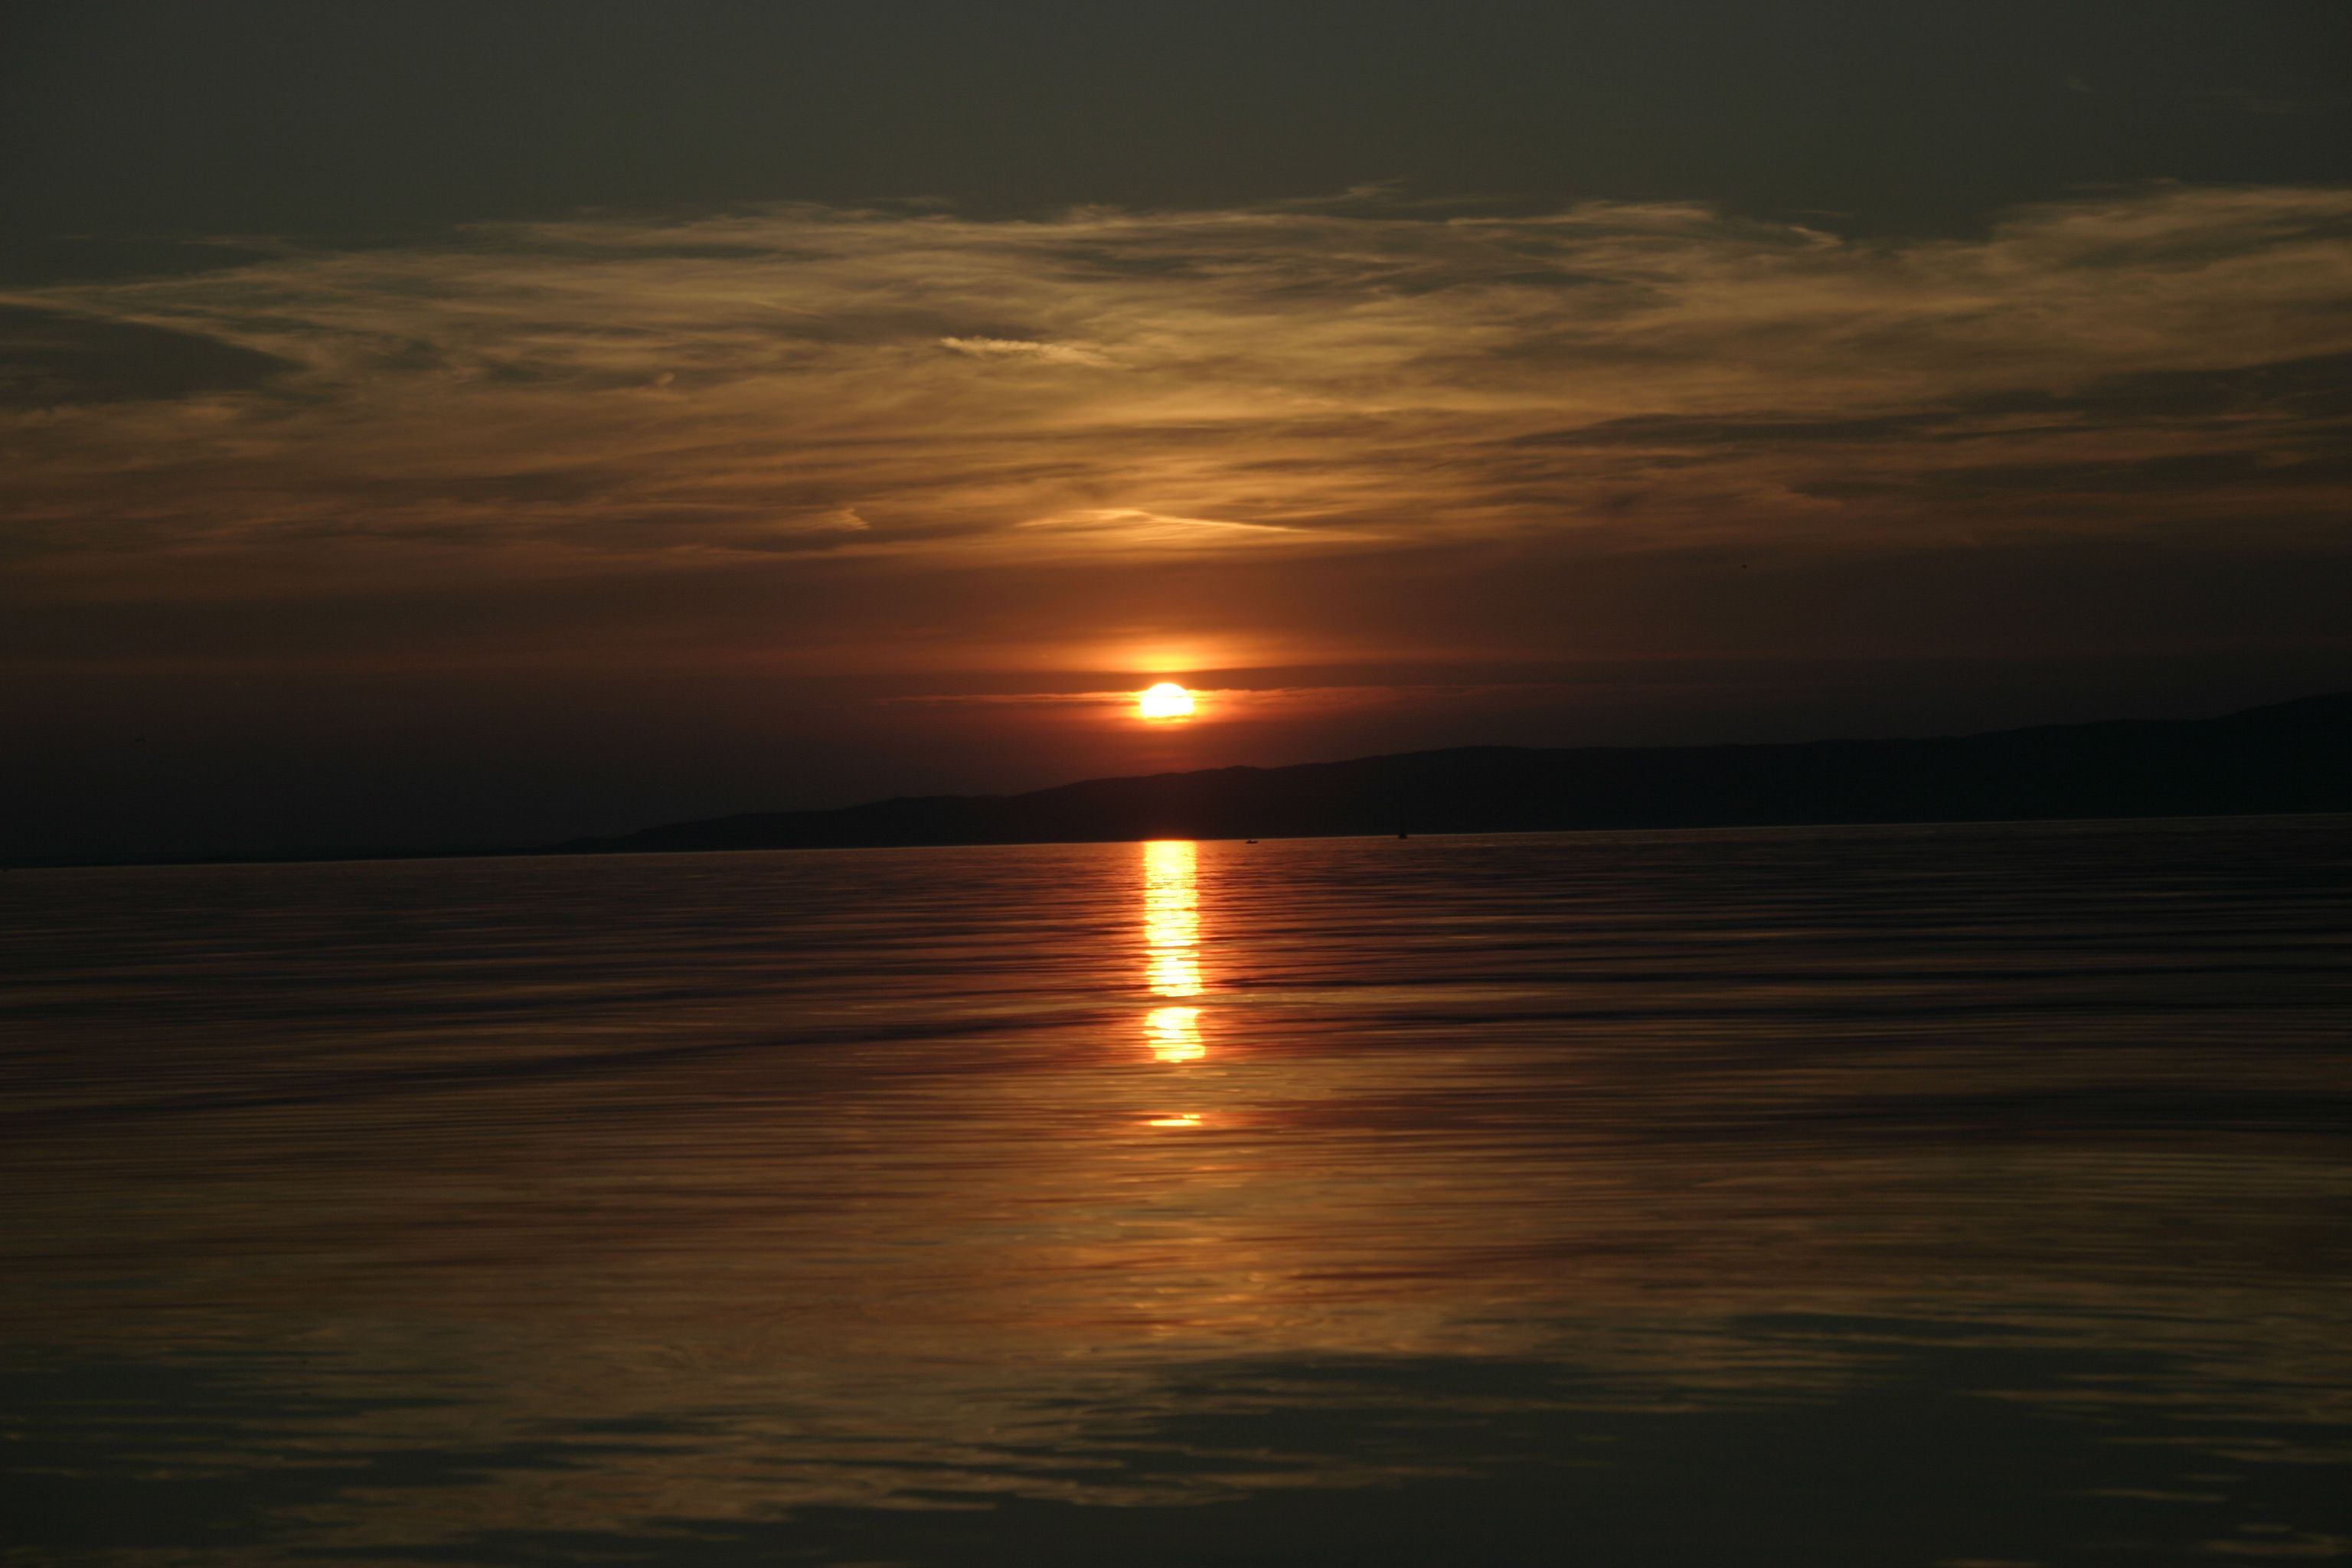 While Waiting For The Sun Of Balatonas By Goda Kvedaraitė How To Be Outgoing In This Moment Photo